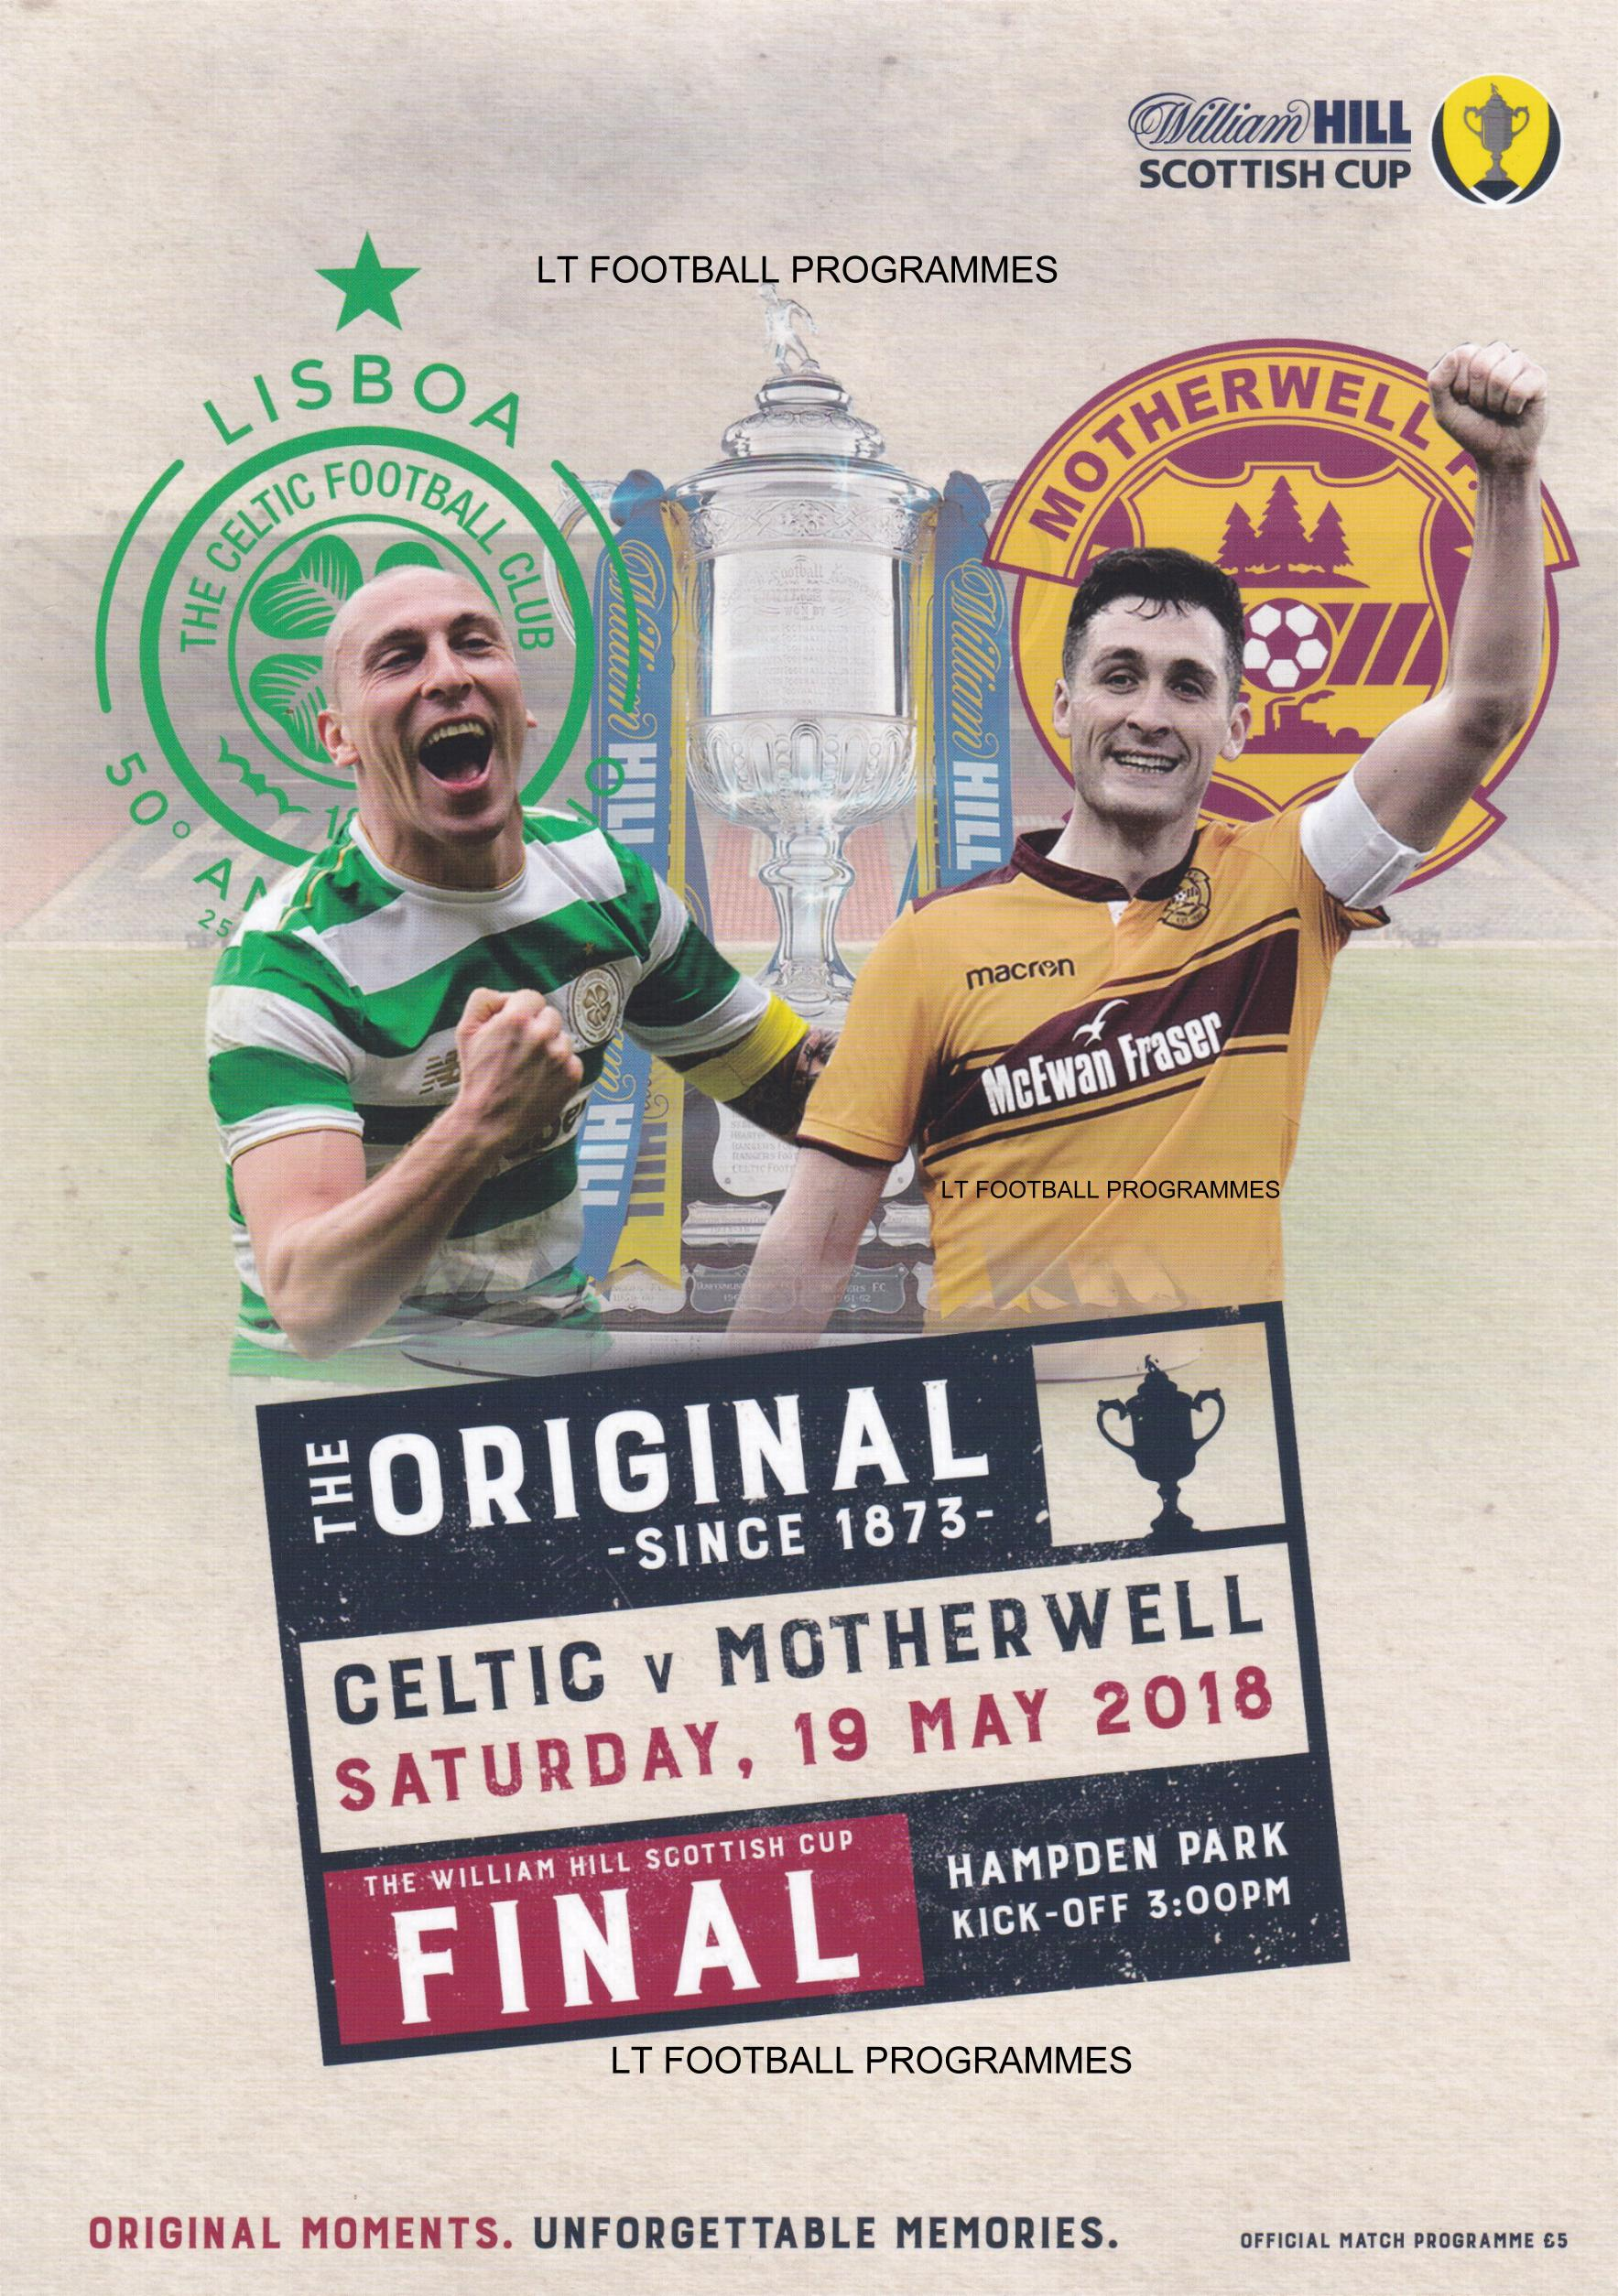 2018 SCOTTISH CUP FINAL - CELTIC v MOTHERWELL